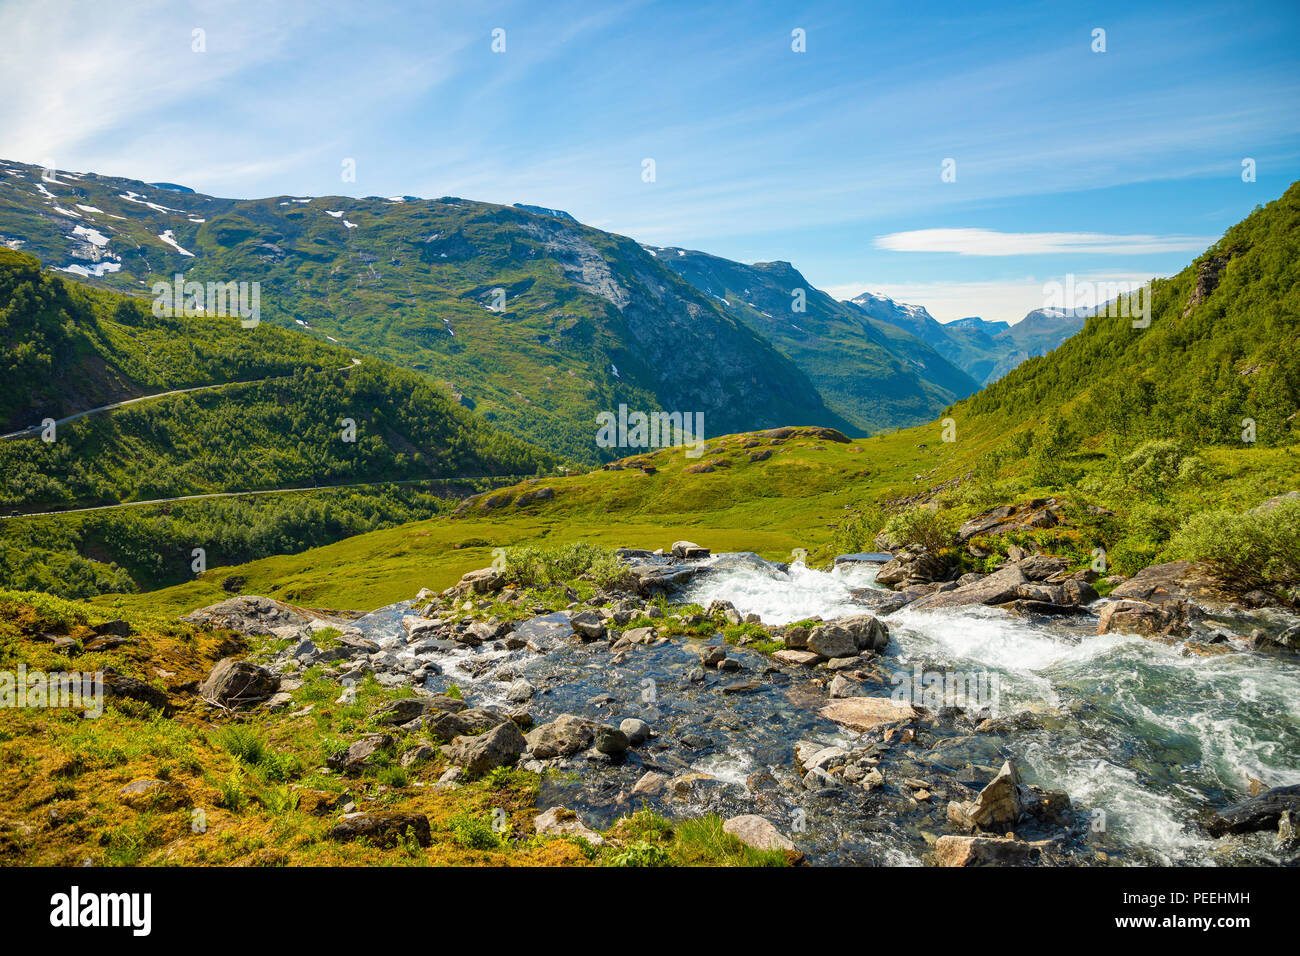 Landscape of the Geiranger valley near Dalsnibba mountain, Norway - Stock Image